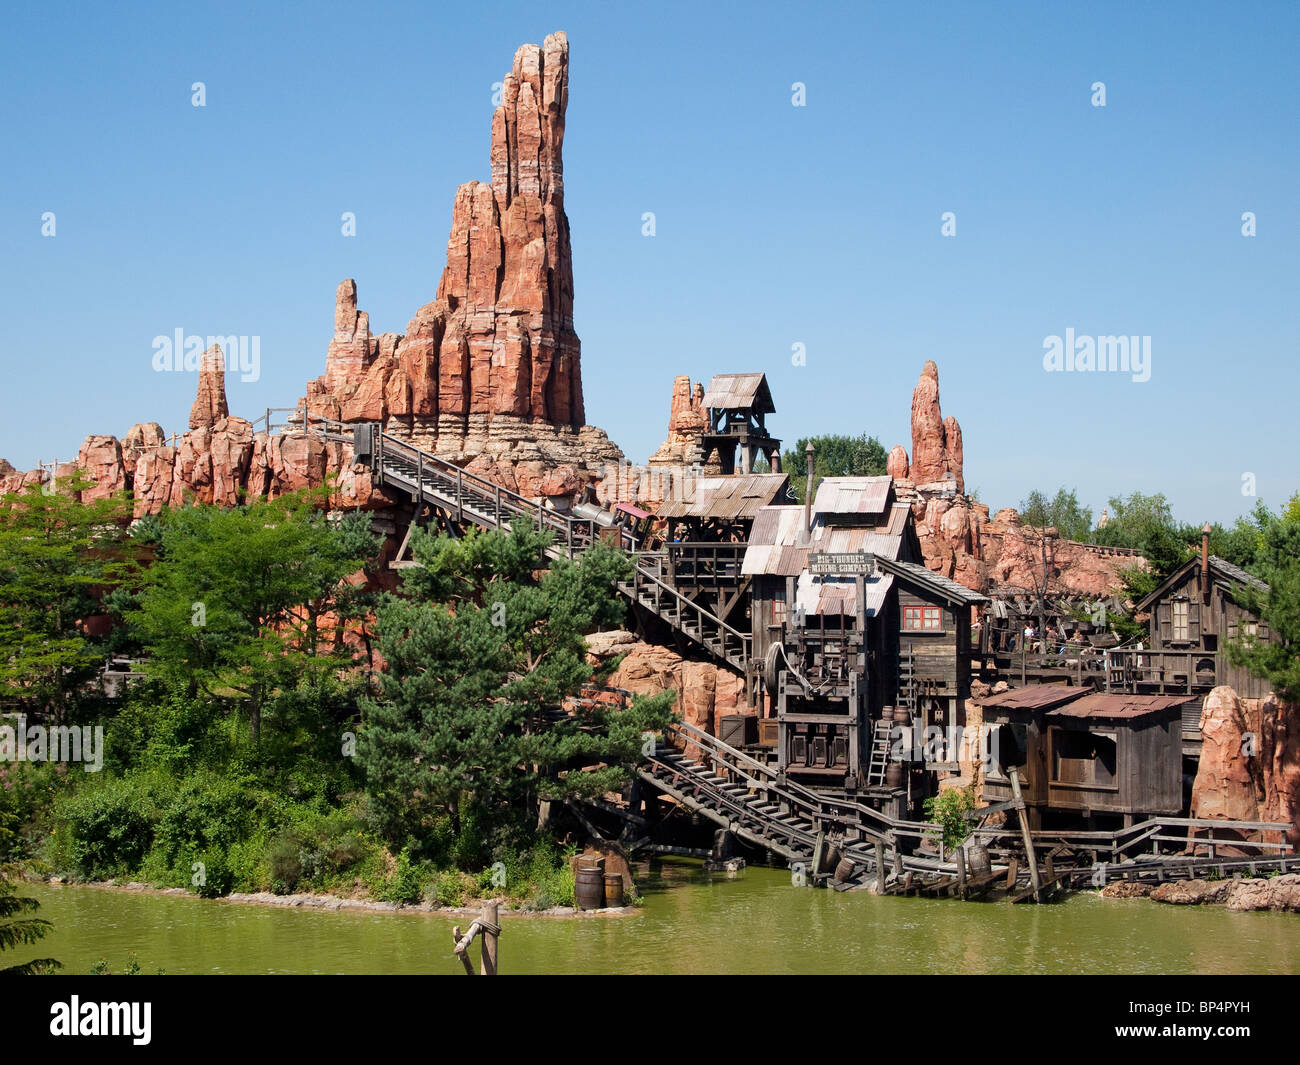 Big Thunder Mountain Roller Coaster, Disneyland Paris Stock Photo